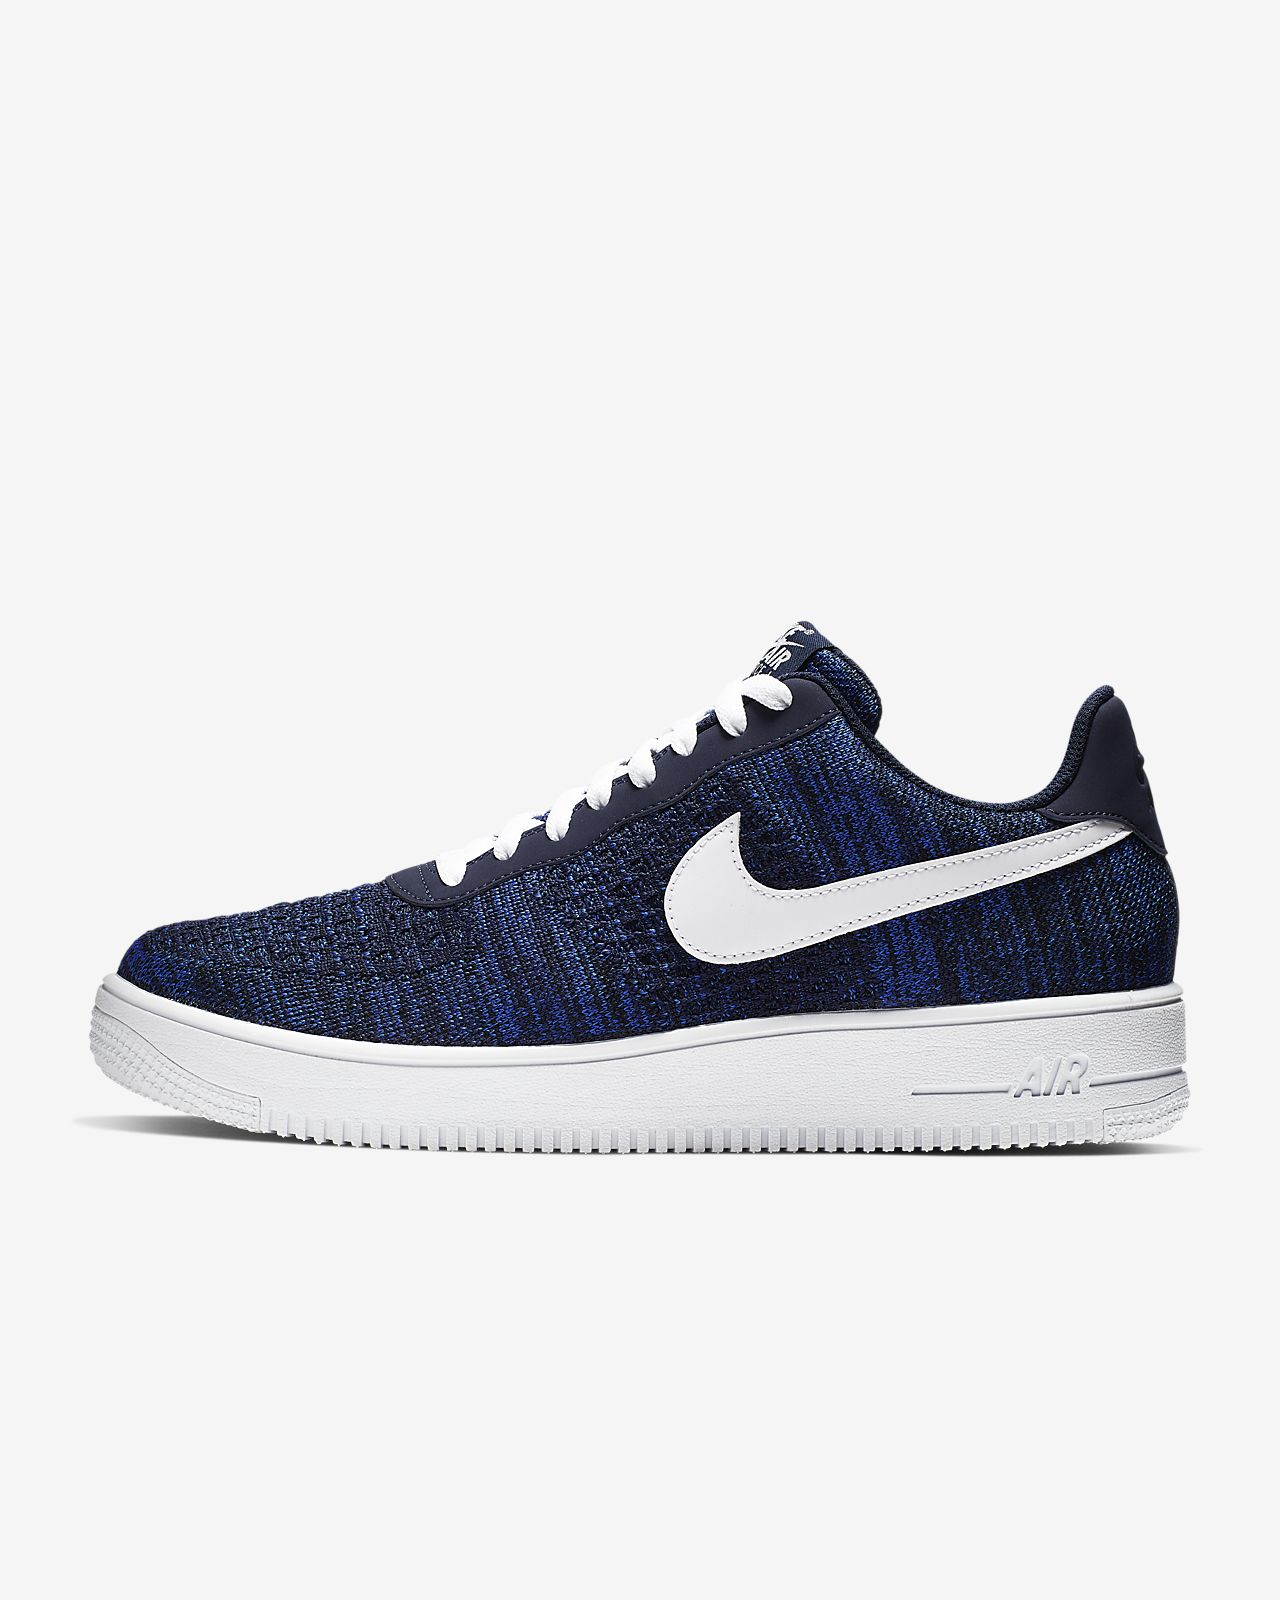 wholesale dealer 95a2e 58ab8 Nike Air Force 1 Flyknit 2.0 Shoe